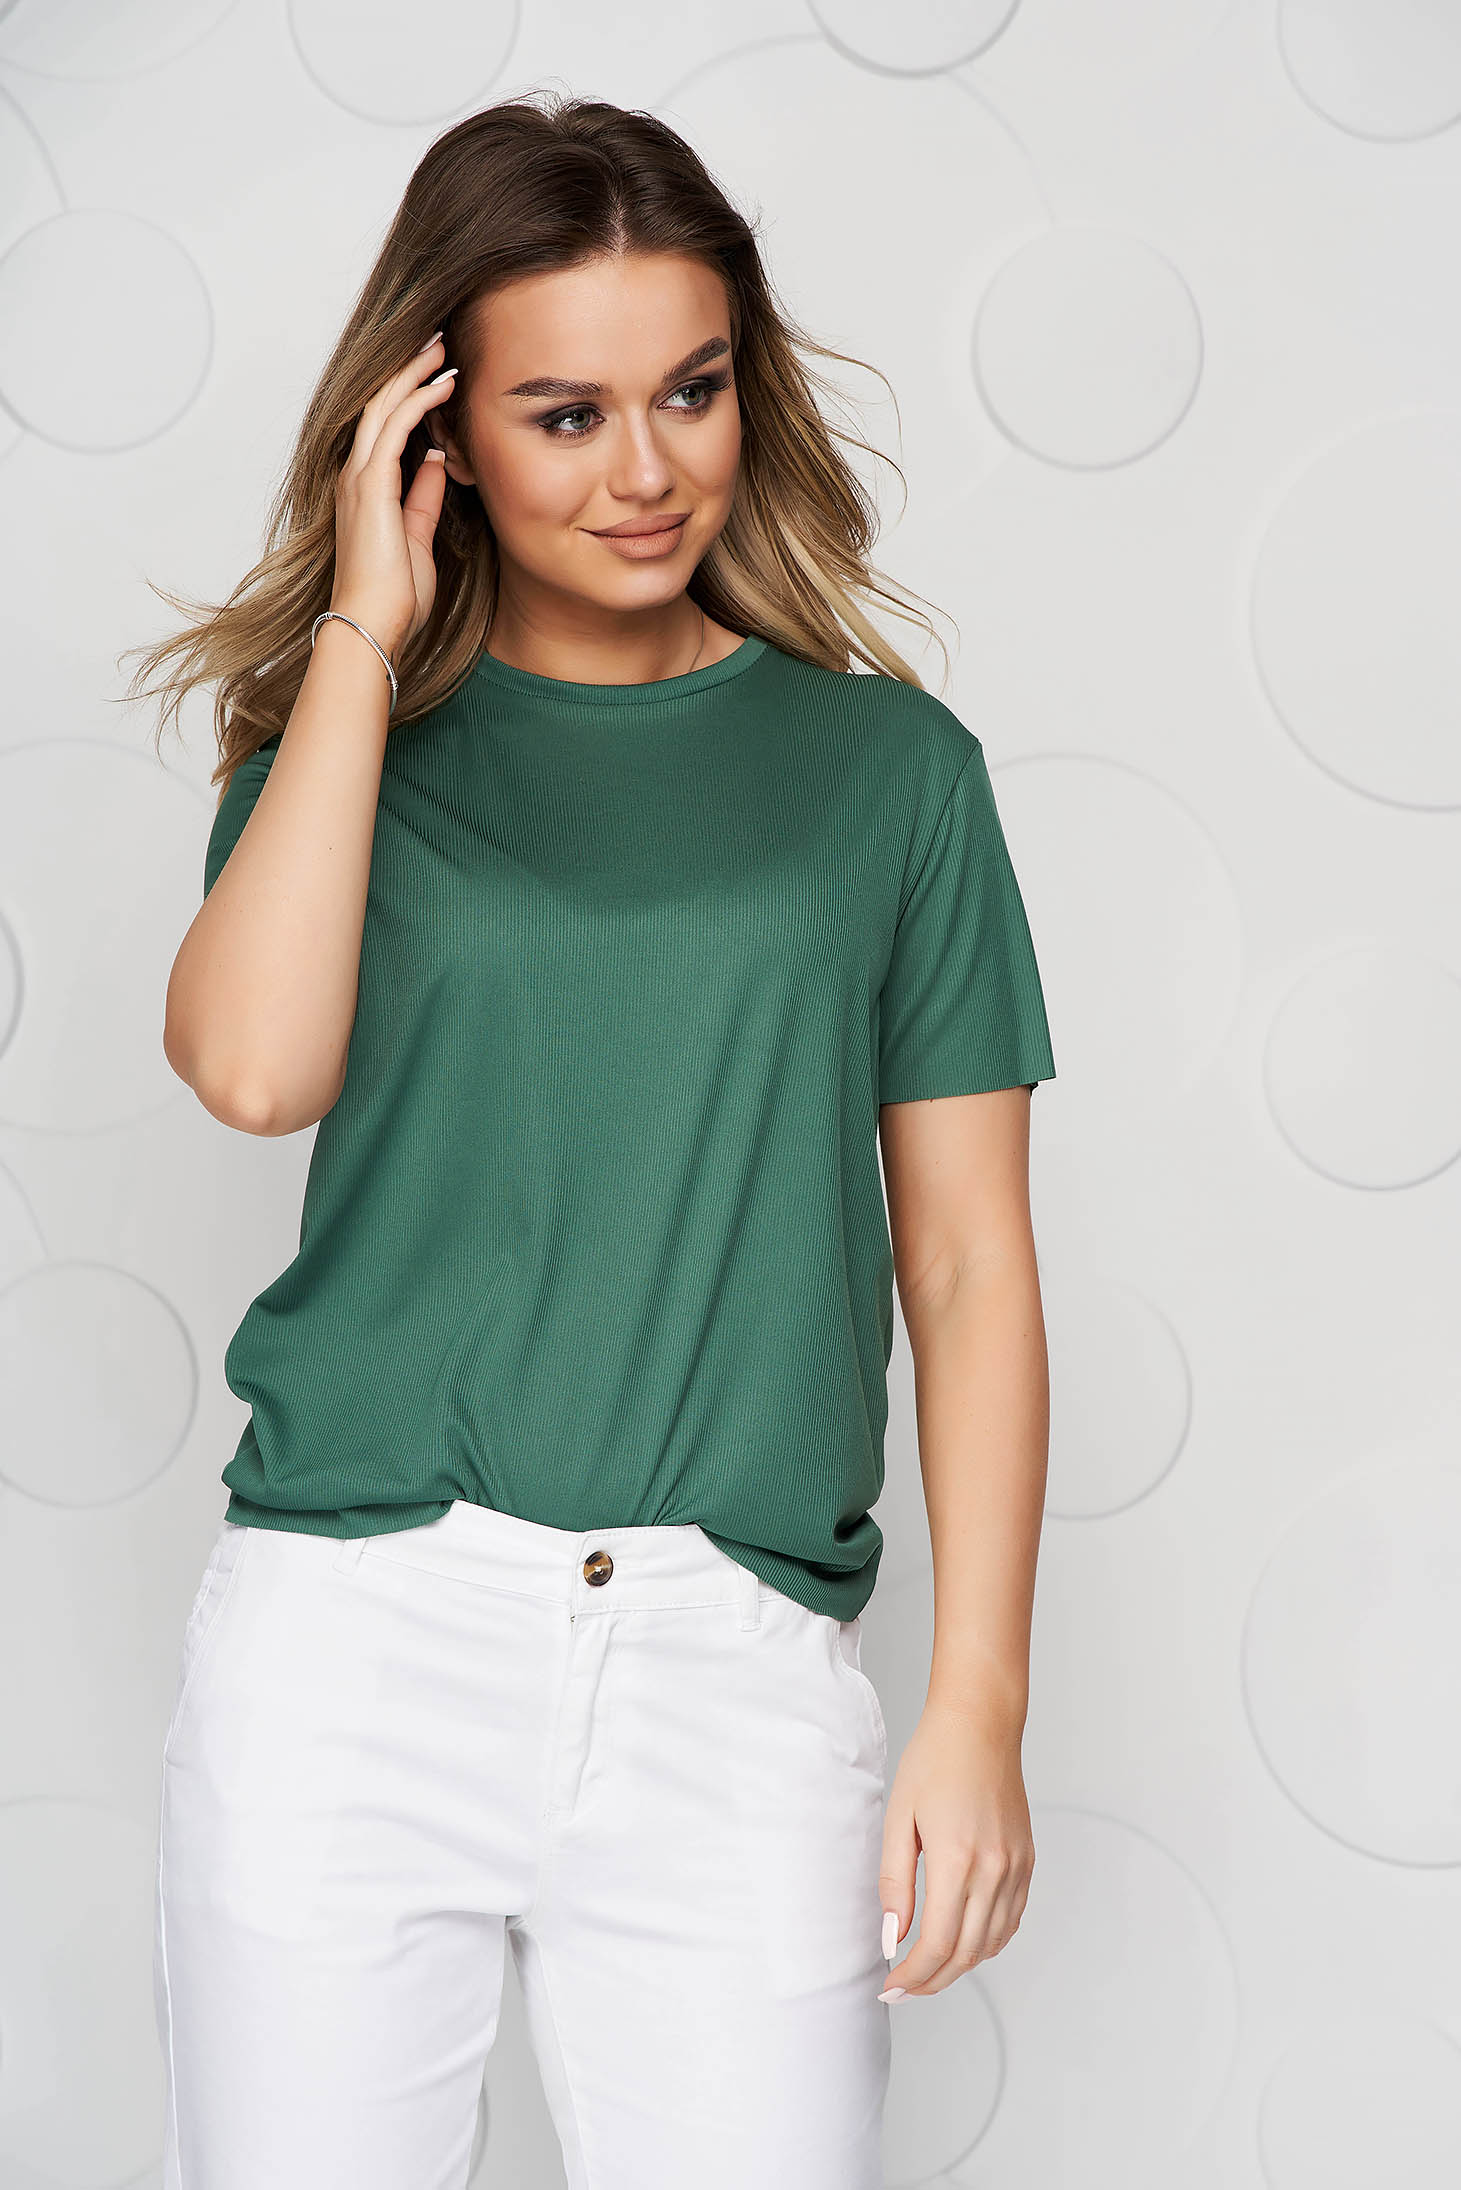 Darkgreen t-shirt casual with tented cut short sleeves